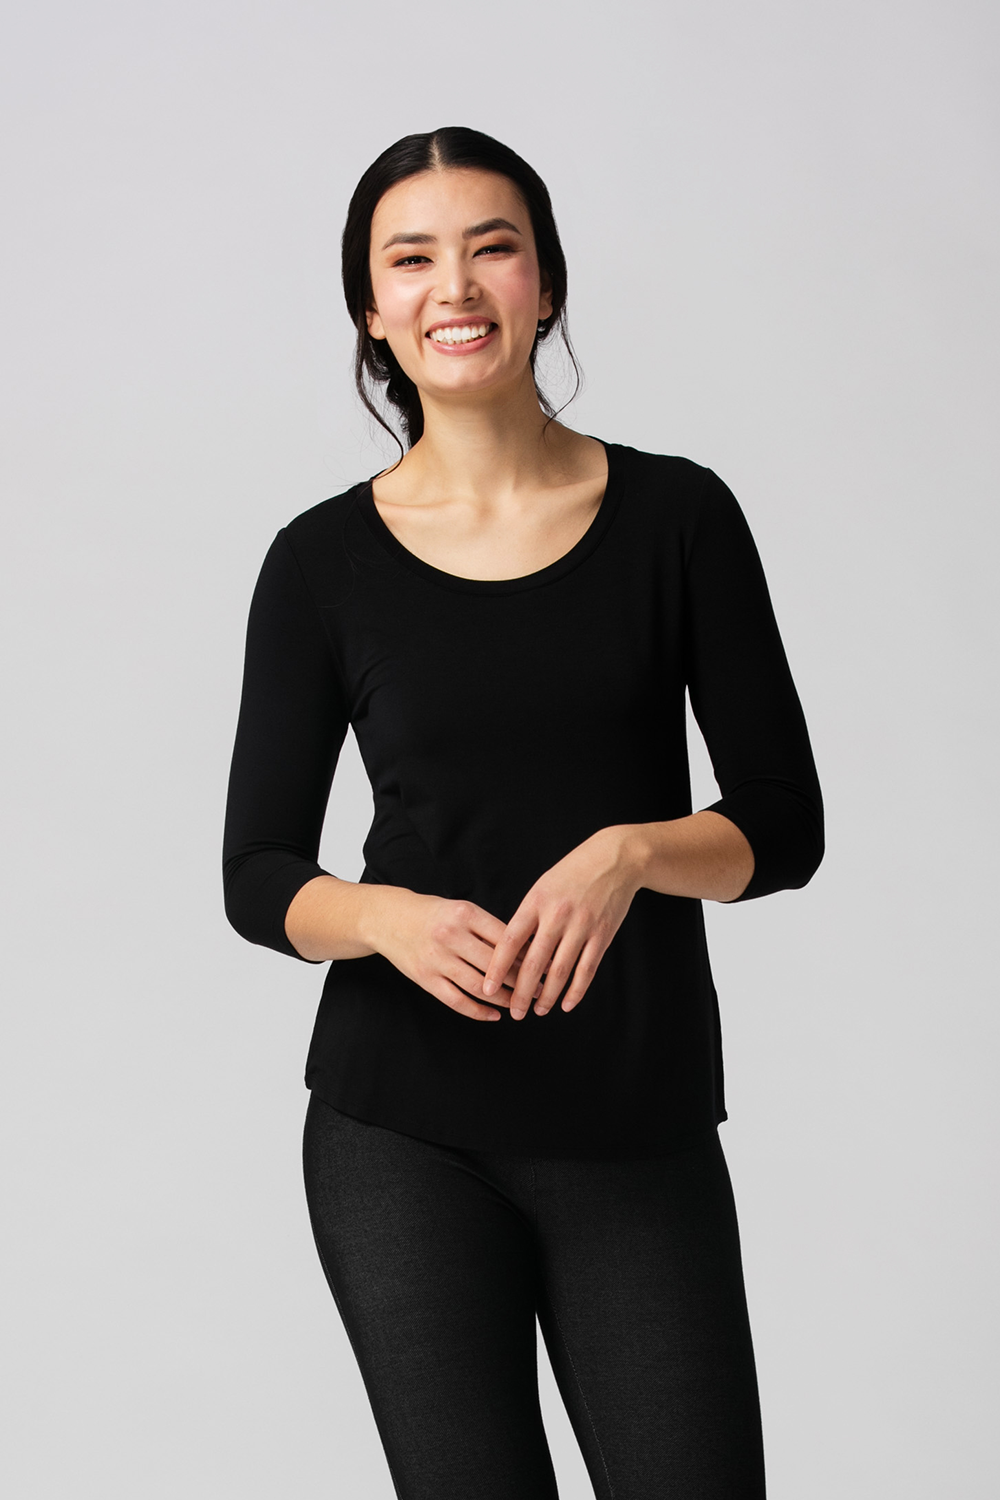 The Ava 3/4 Sleeve is a basic that makes you look and feel great. Made from silky soft Bamboo, featuring a flattering scoop neck line and curved hem line for more coverage in the back. The Ava 3/4 Sleeve top is both feminine and flattering and comes in a great selection of colours for any season. Black Fabrication: 95% Viscose from Bamboo, 5% Spandex $55.00